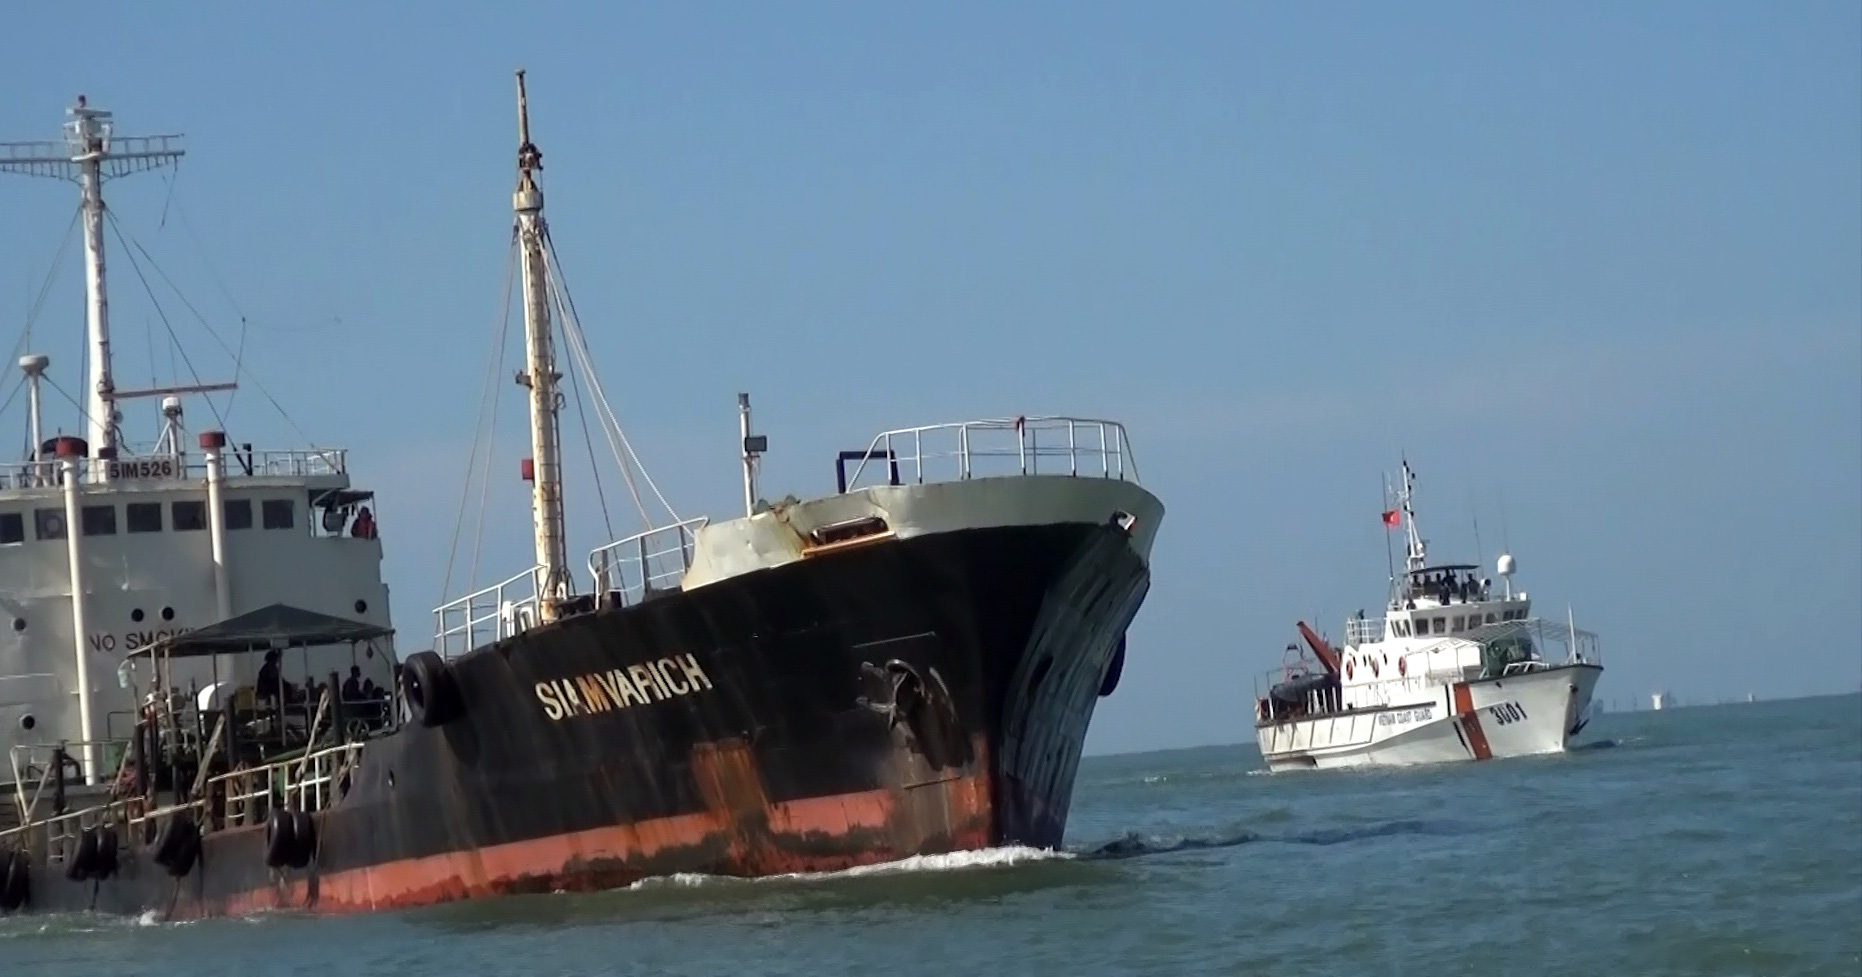 Vietnam Coast Guard seizes ship with 1.7 million liters of smuggled oil